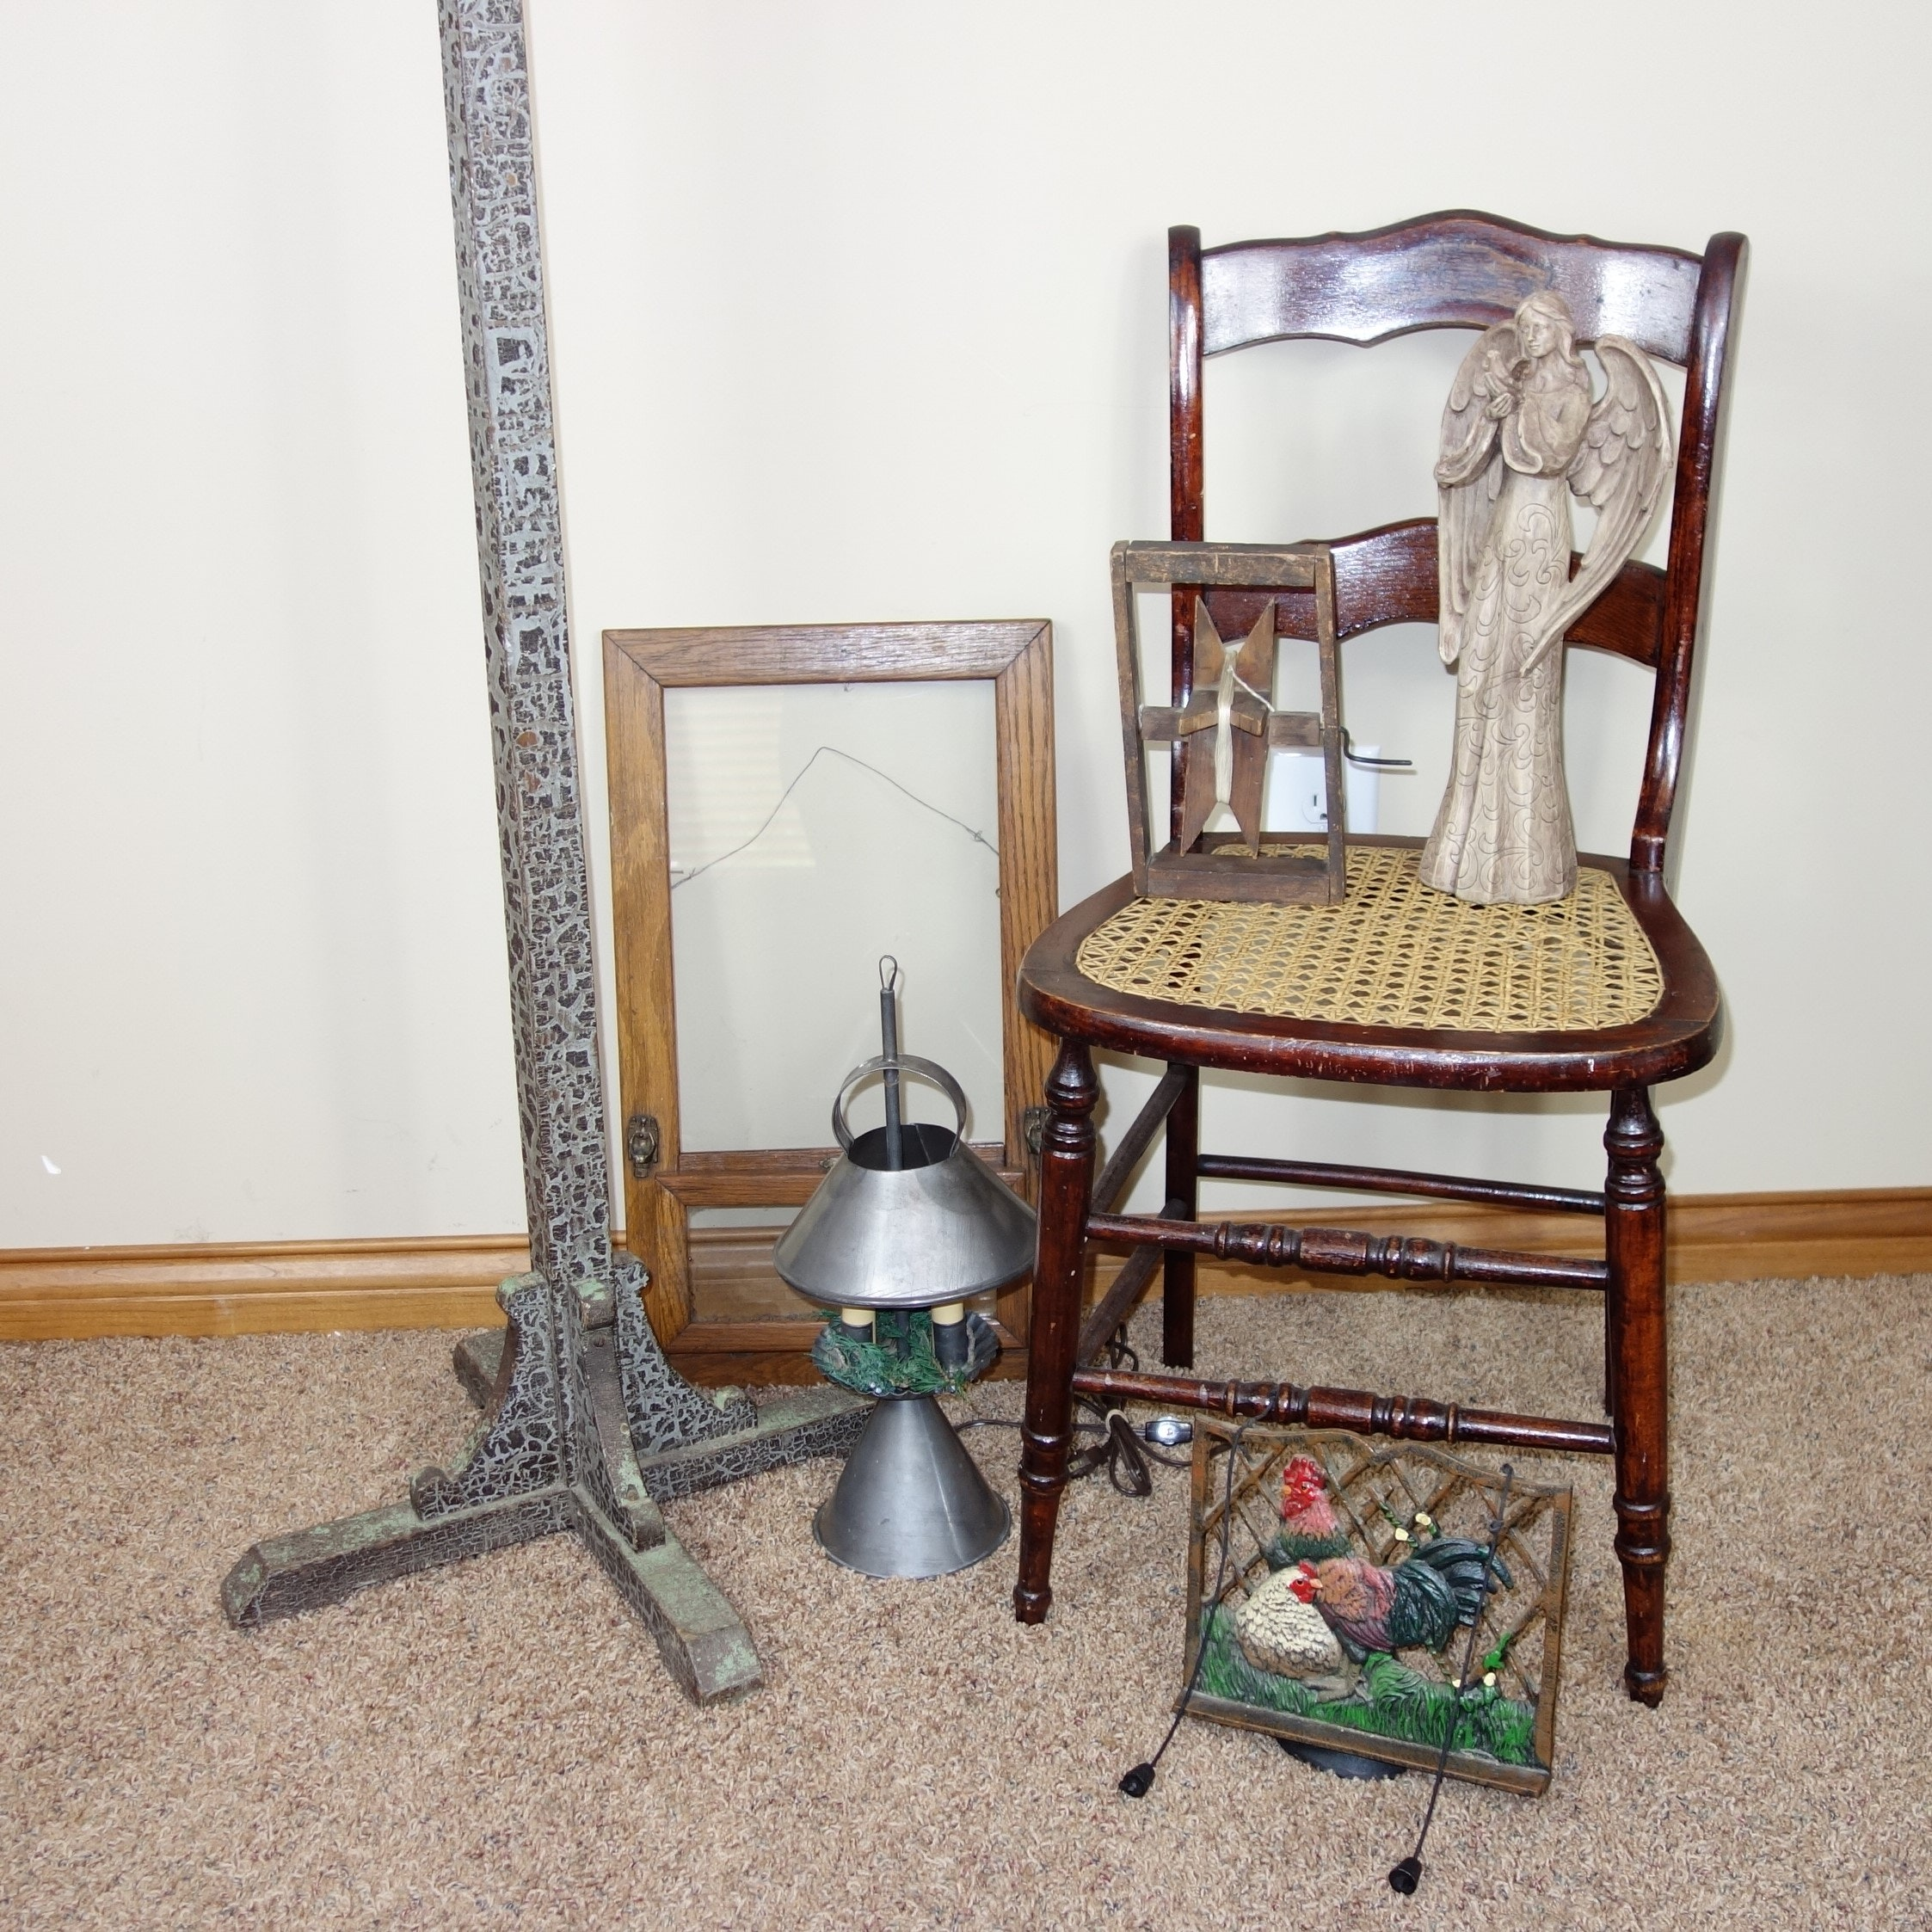 Coat Rack, Side Chair and Decor